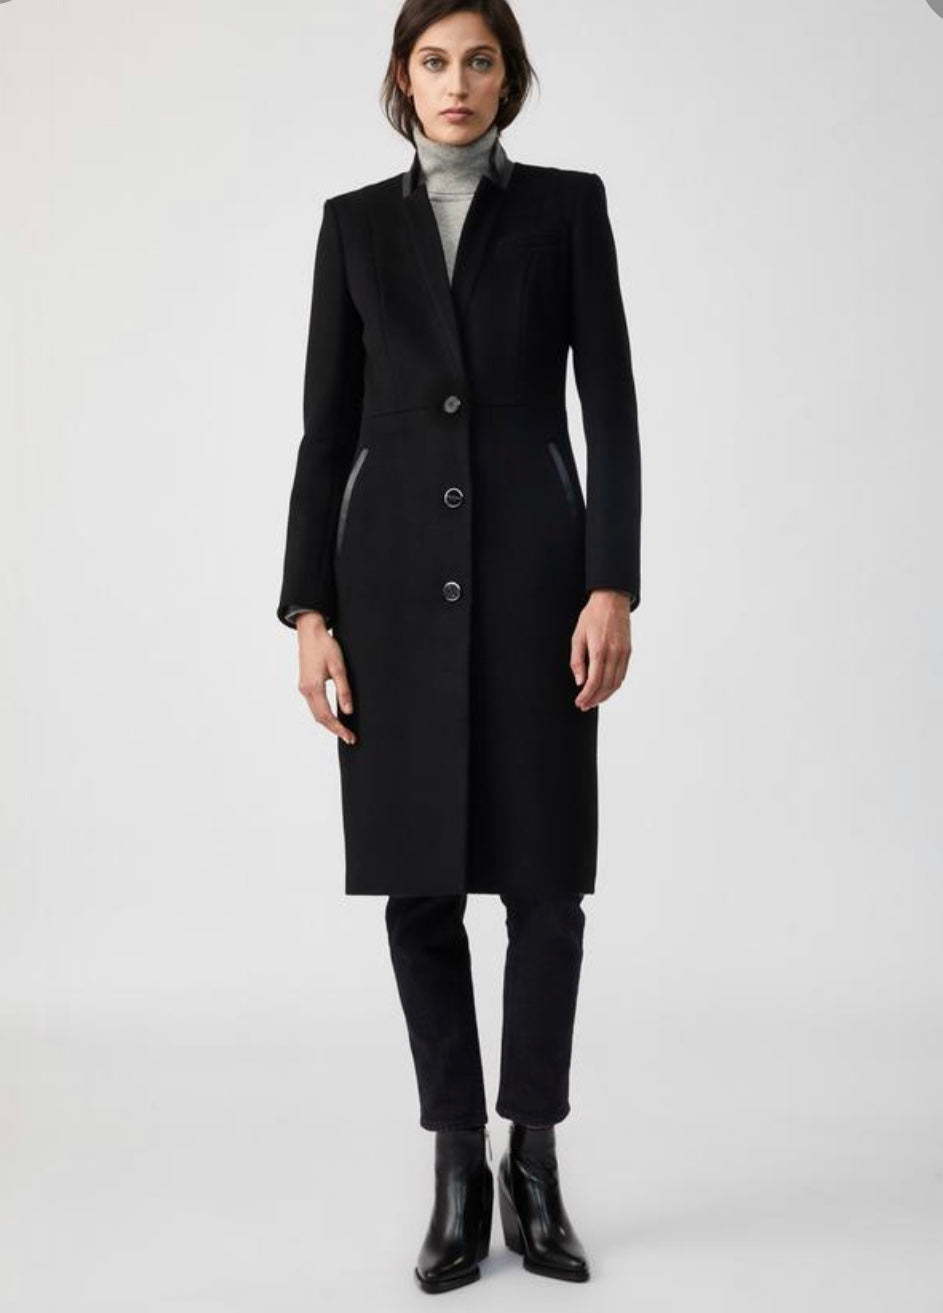 leather trim wool 3/4 al fit coat - Bianca